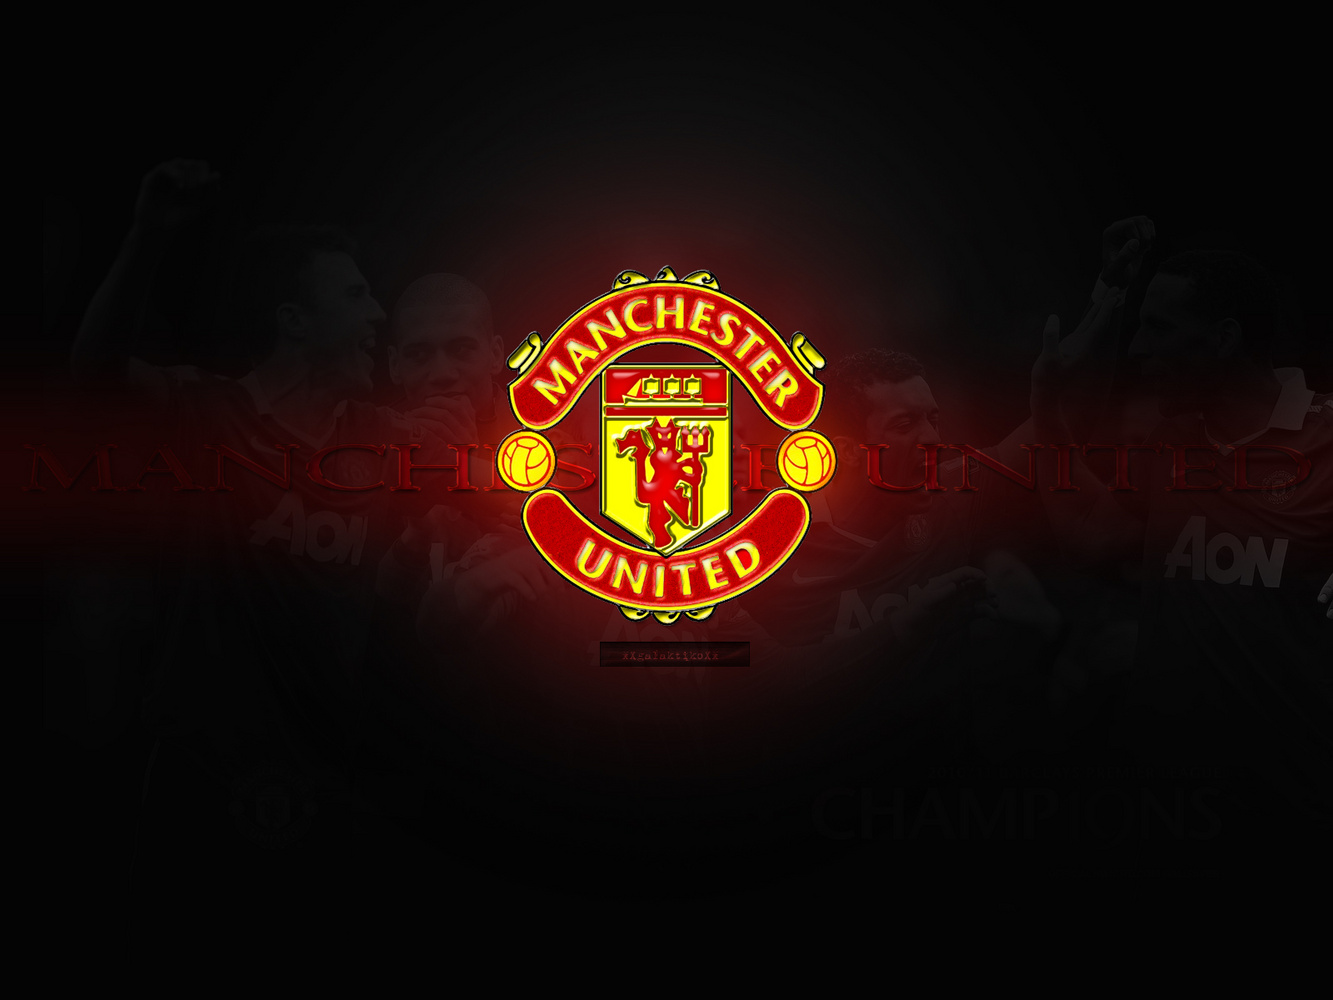 Wallpapers hd for mac manchester united logo wallpapers manchester united logo wallpaper voltagebd Gallery